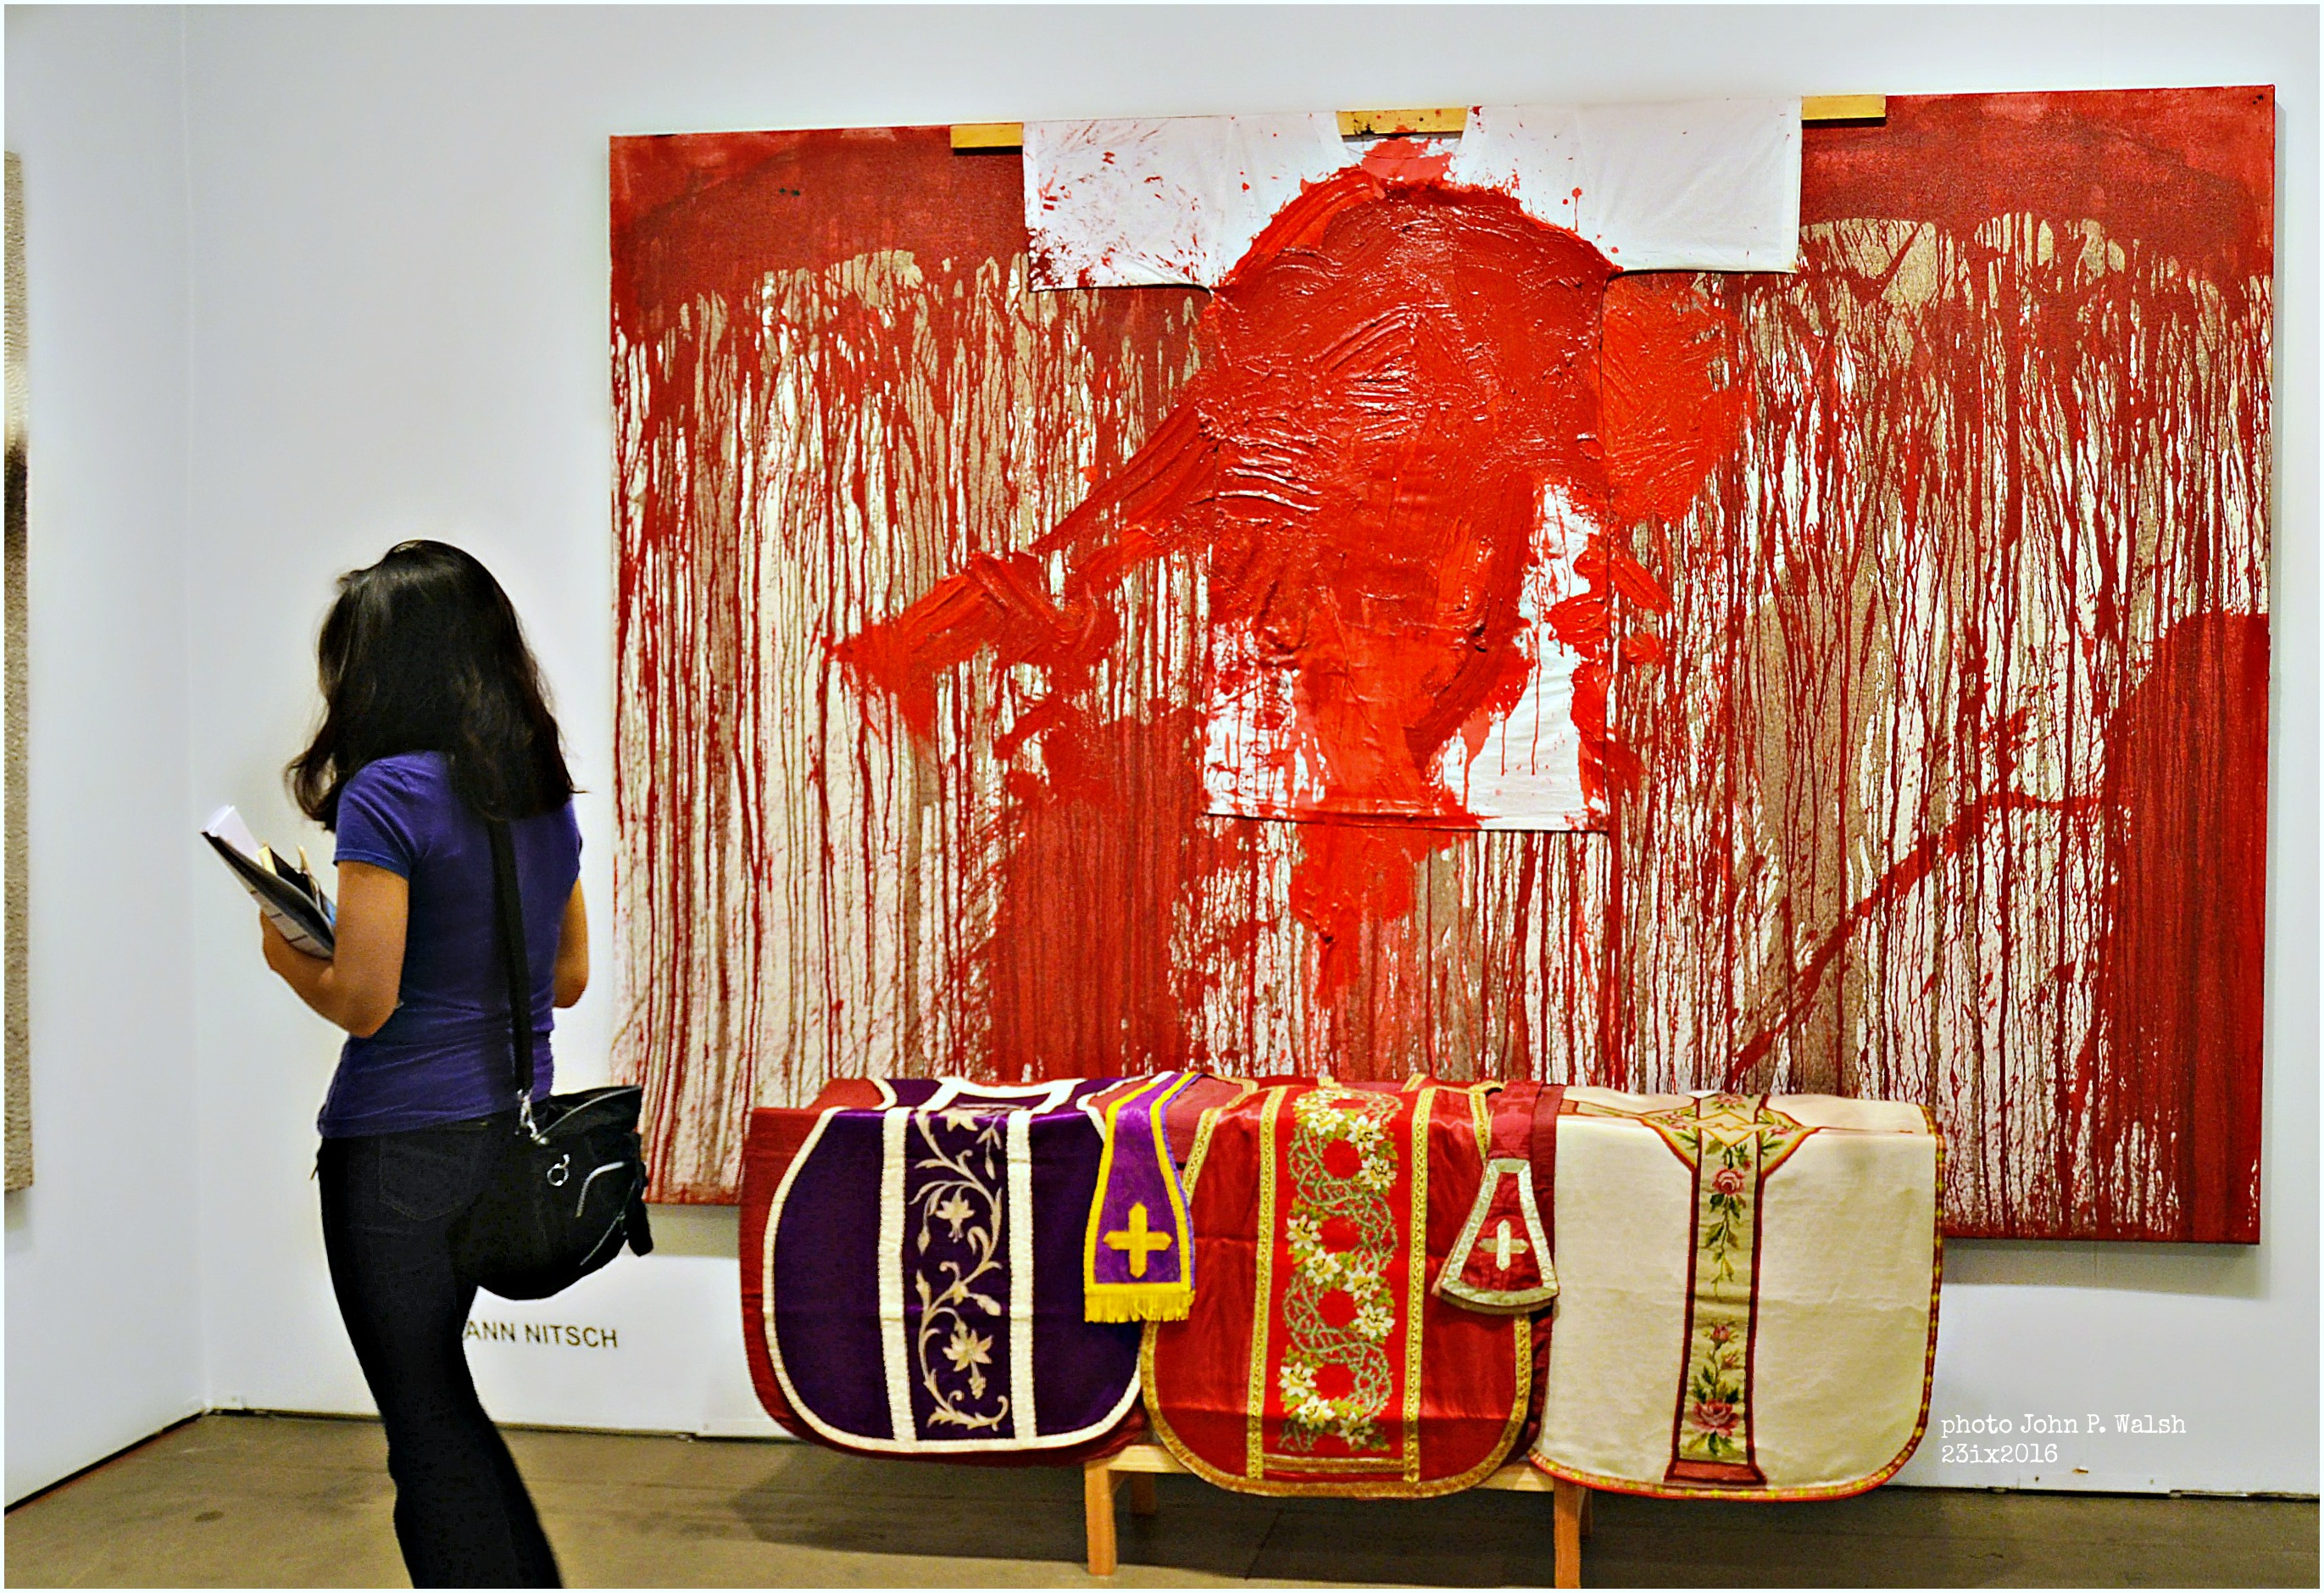 Hermann Nitsch, Schüttbild (Shaped Image), 2013.